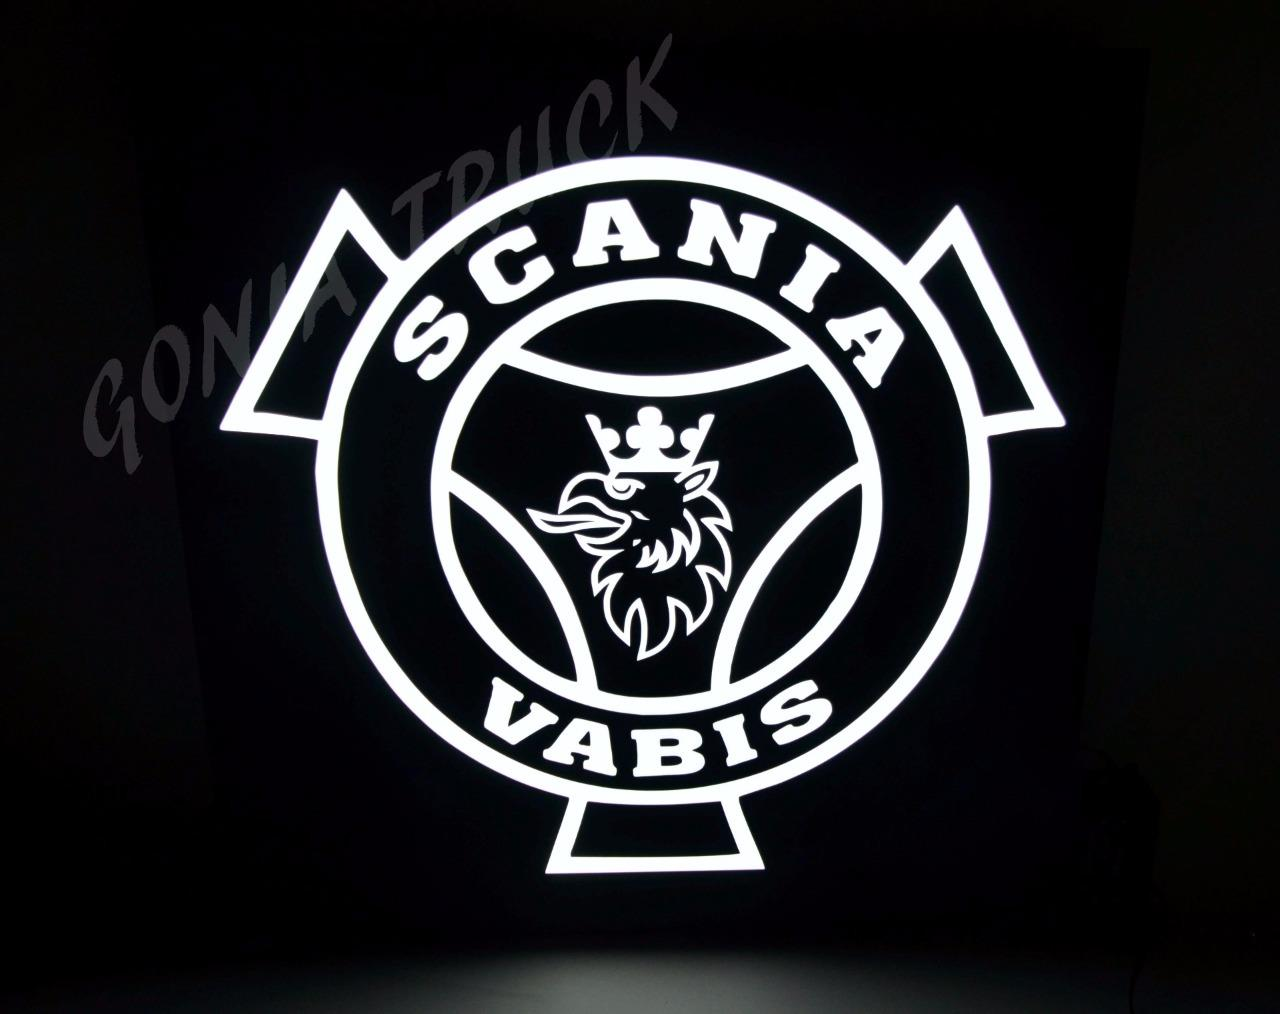 LEDs LOGO SCANIA VABIS With The Dimmer Switch And